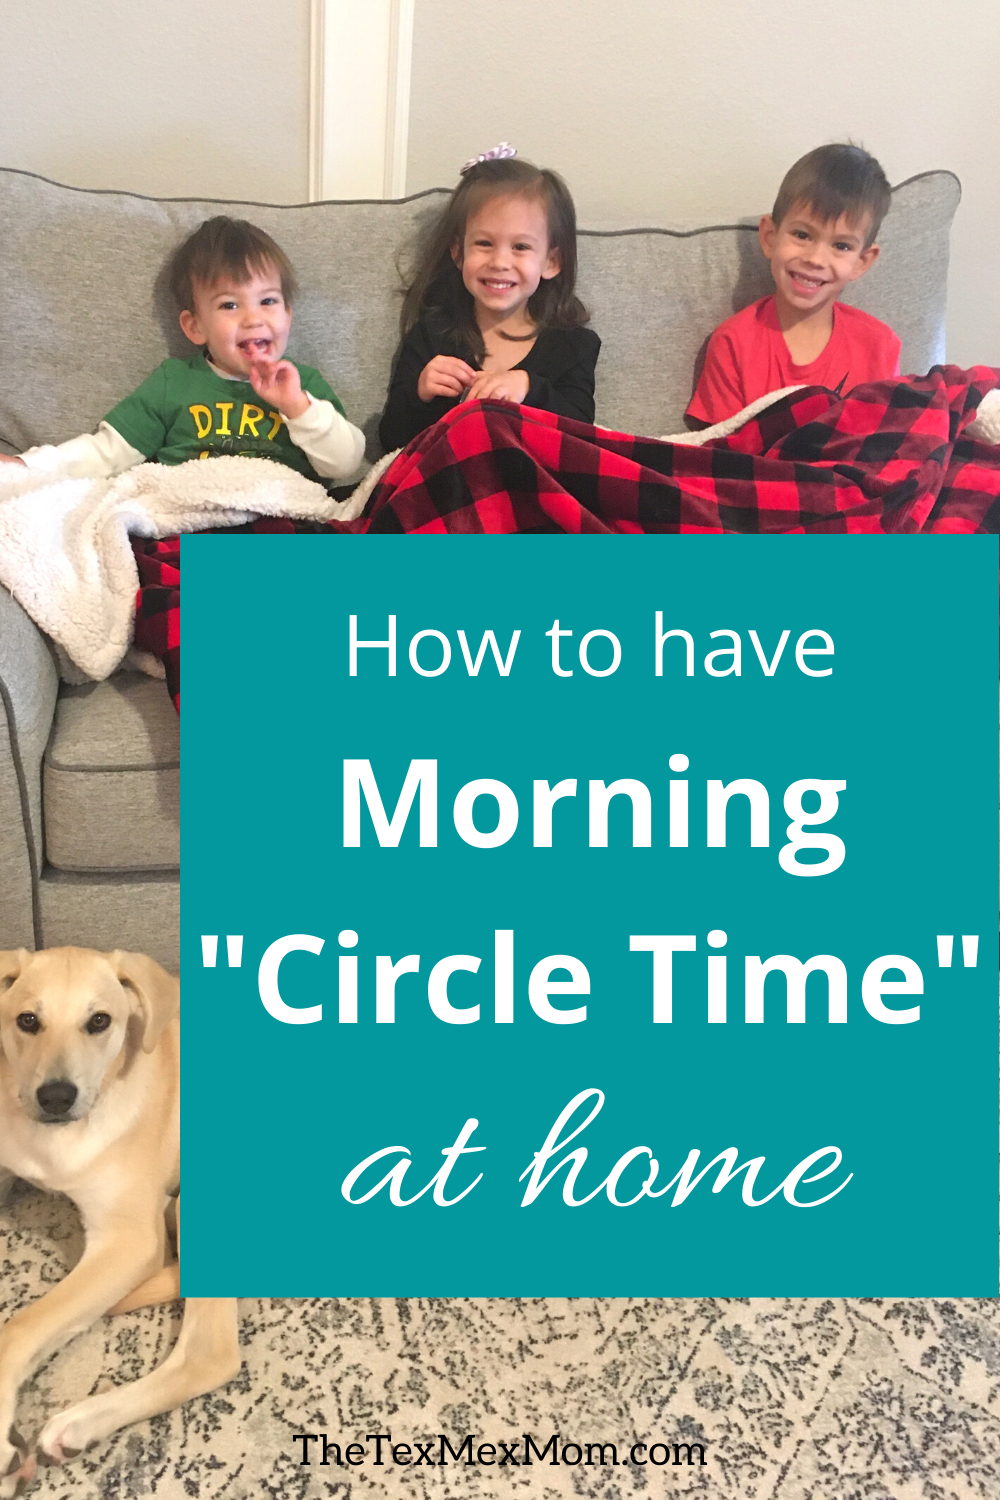 3 kids on the couch, ready for morning circle time at home